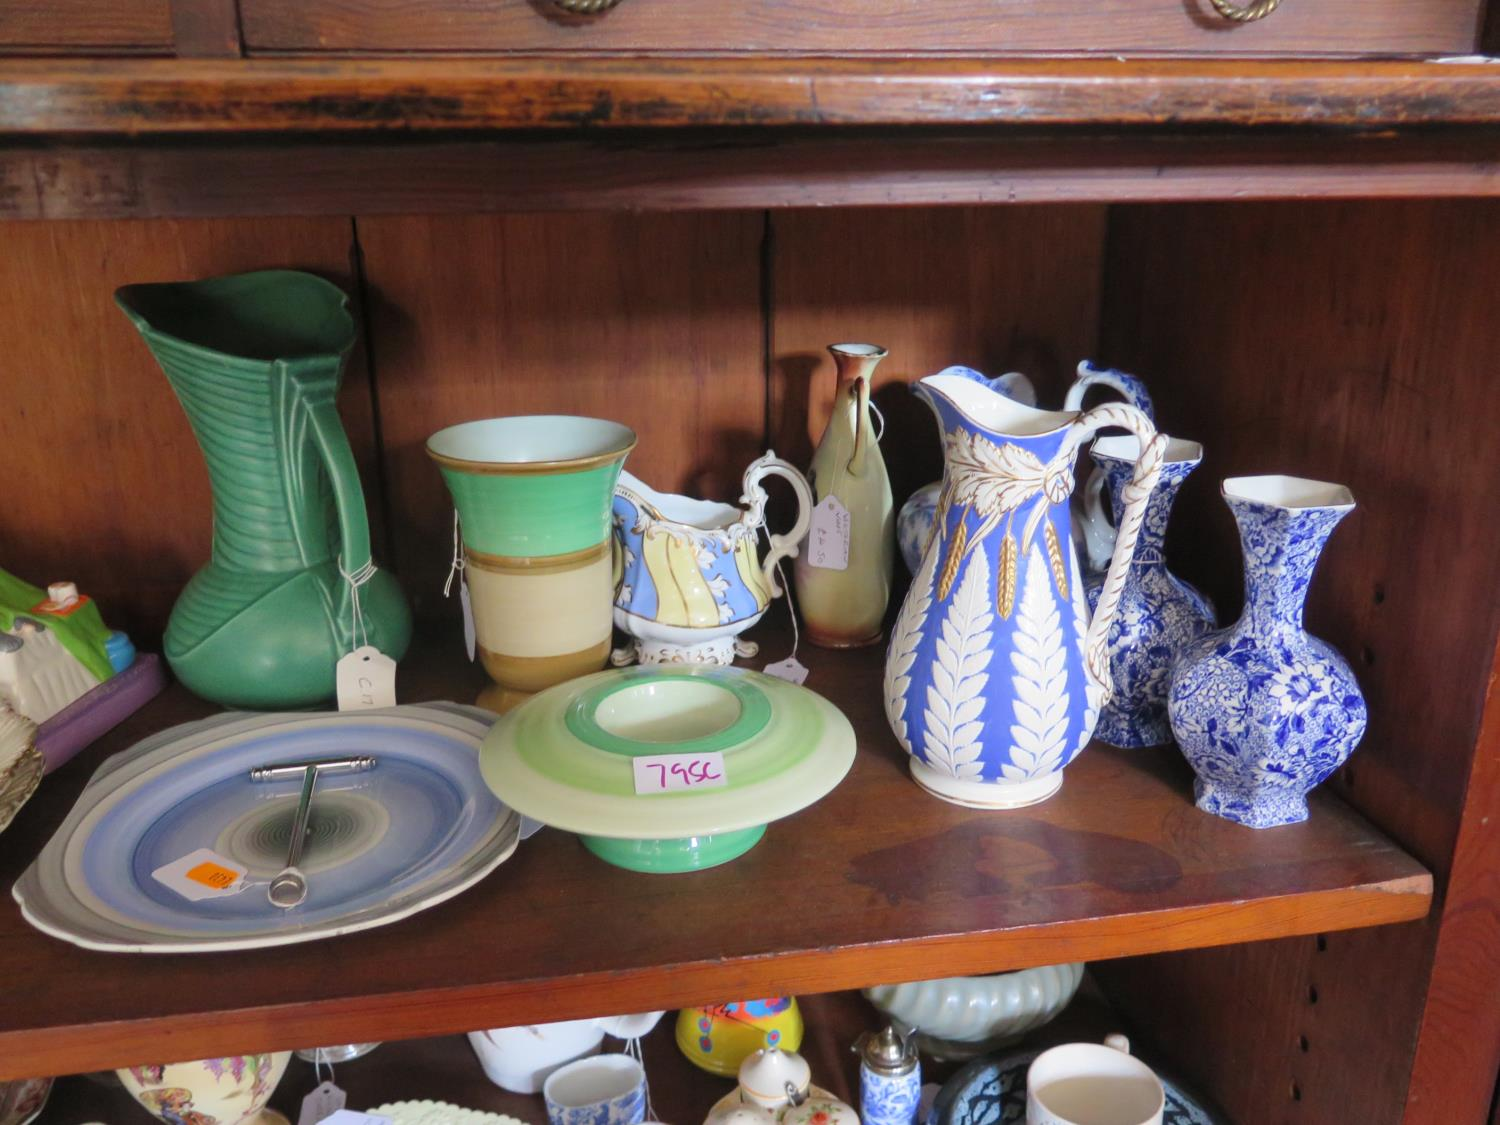 Lot 795C - A Selection of Ceramics and Glass including Shelley, Victorian salt glazed jug by William Brownfield